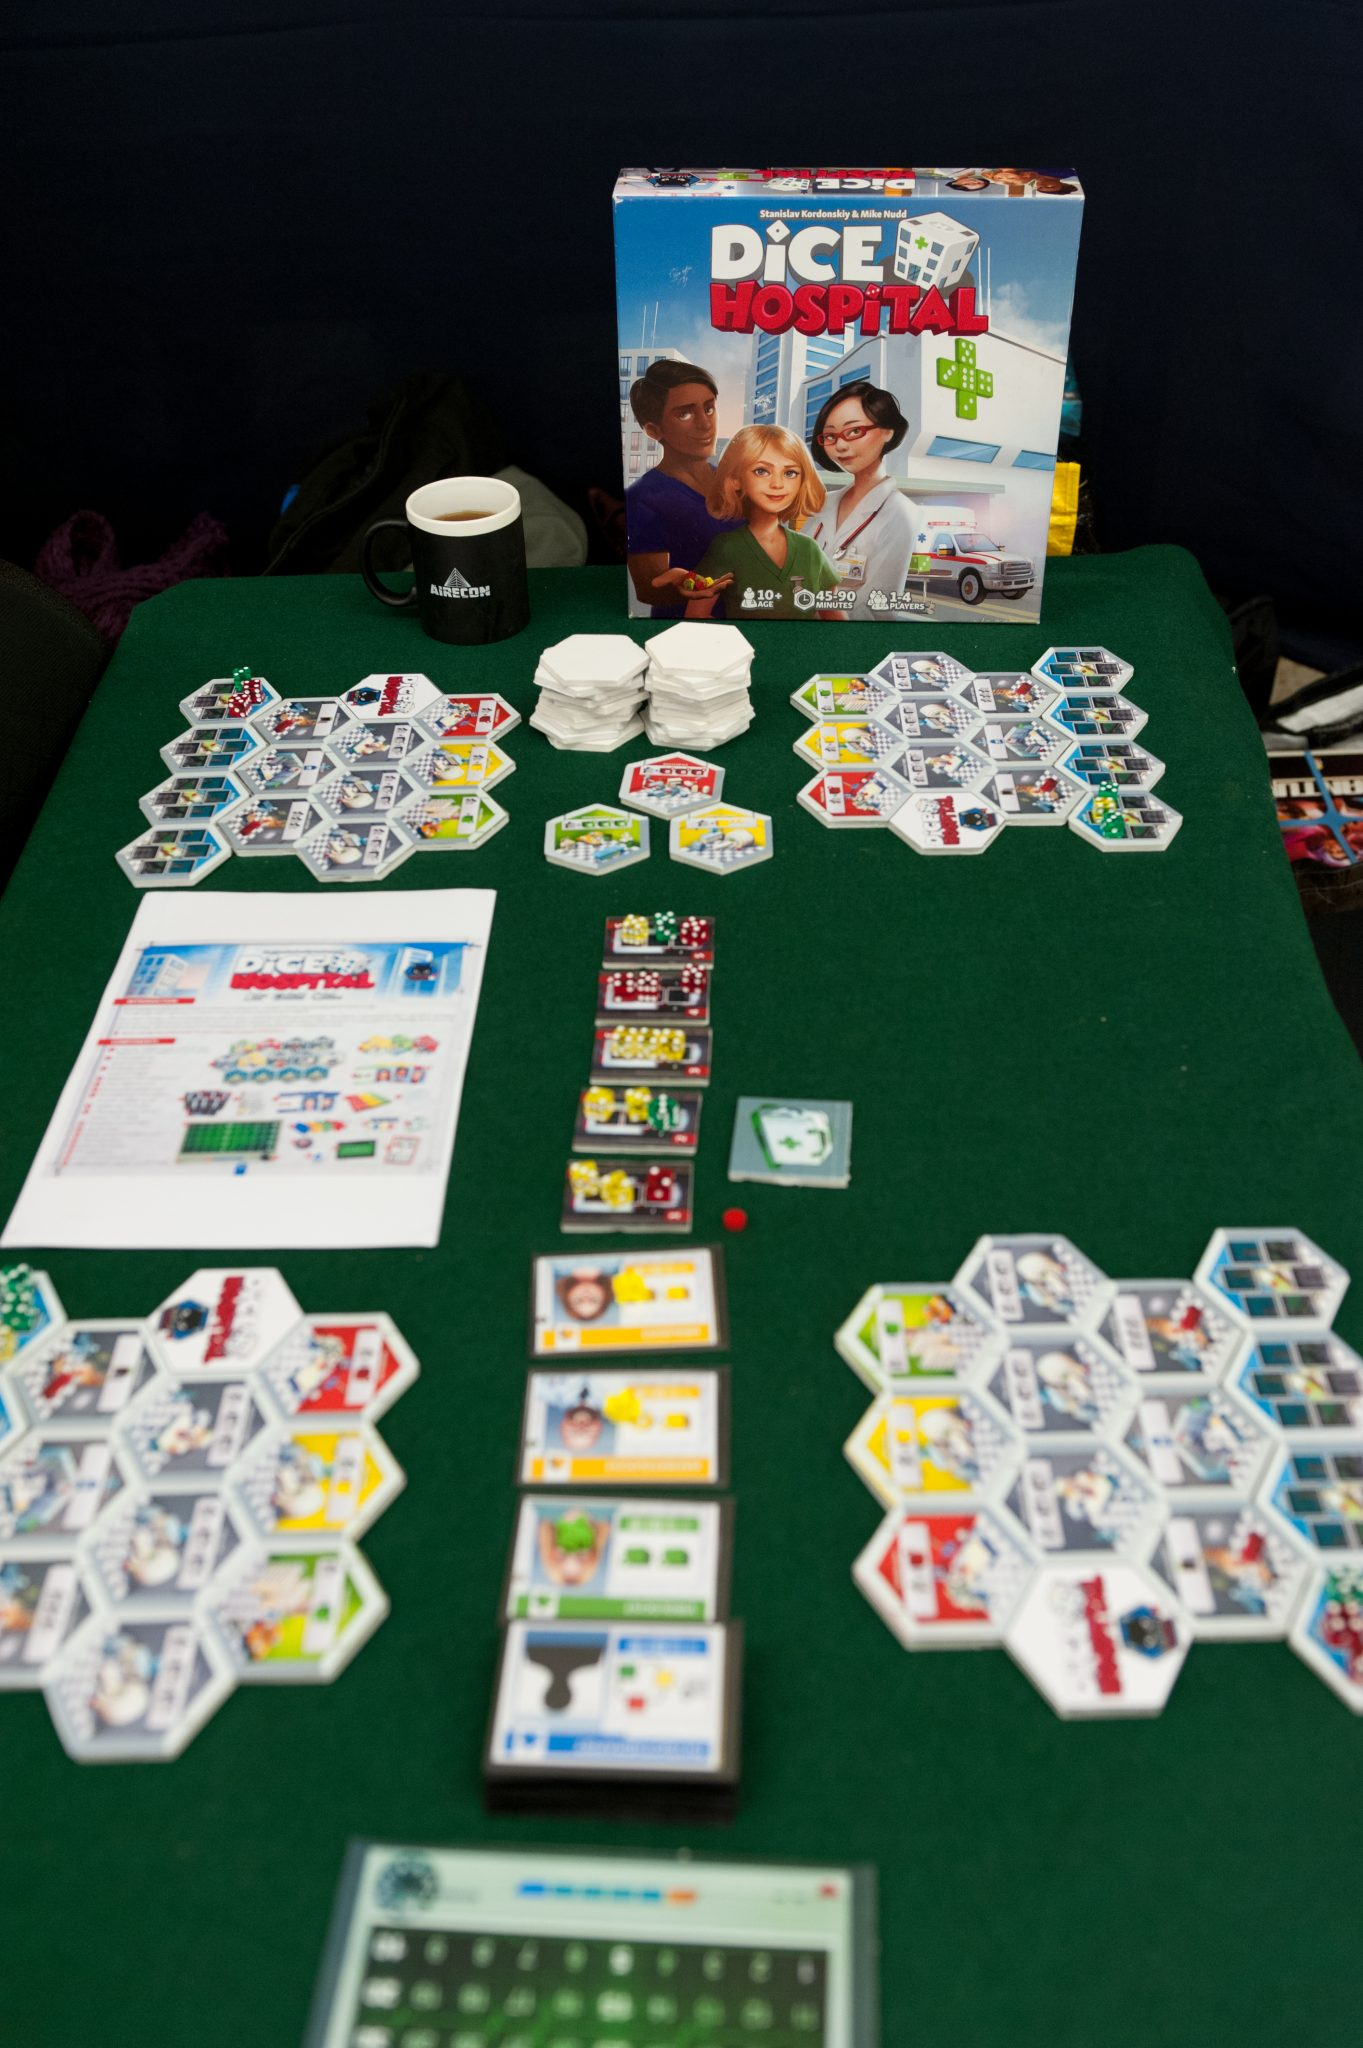 Airecon 2018, dice hospital